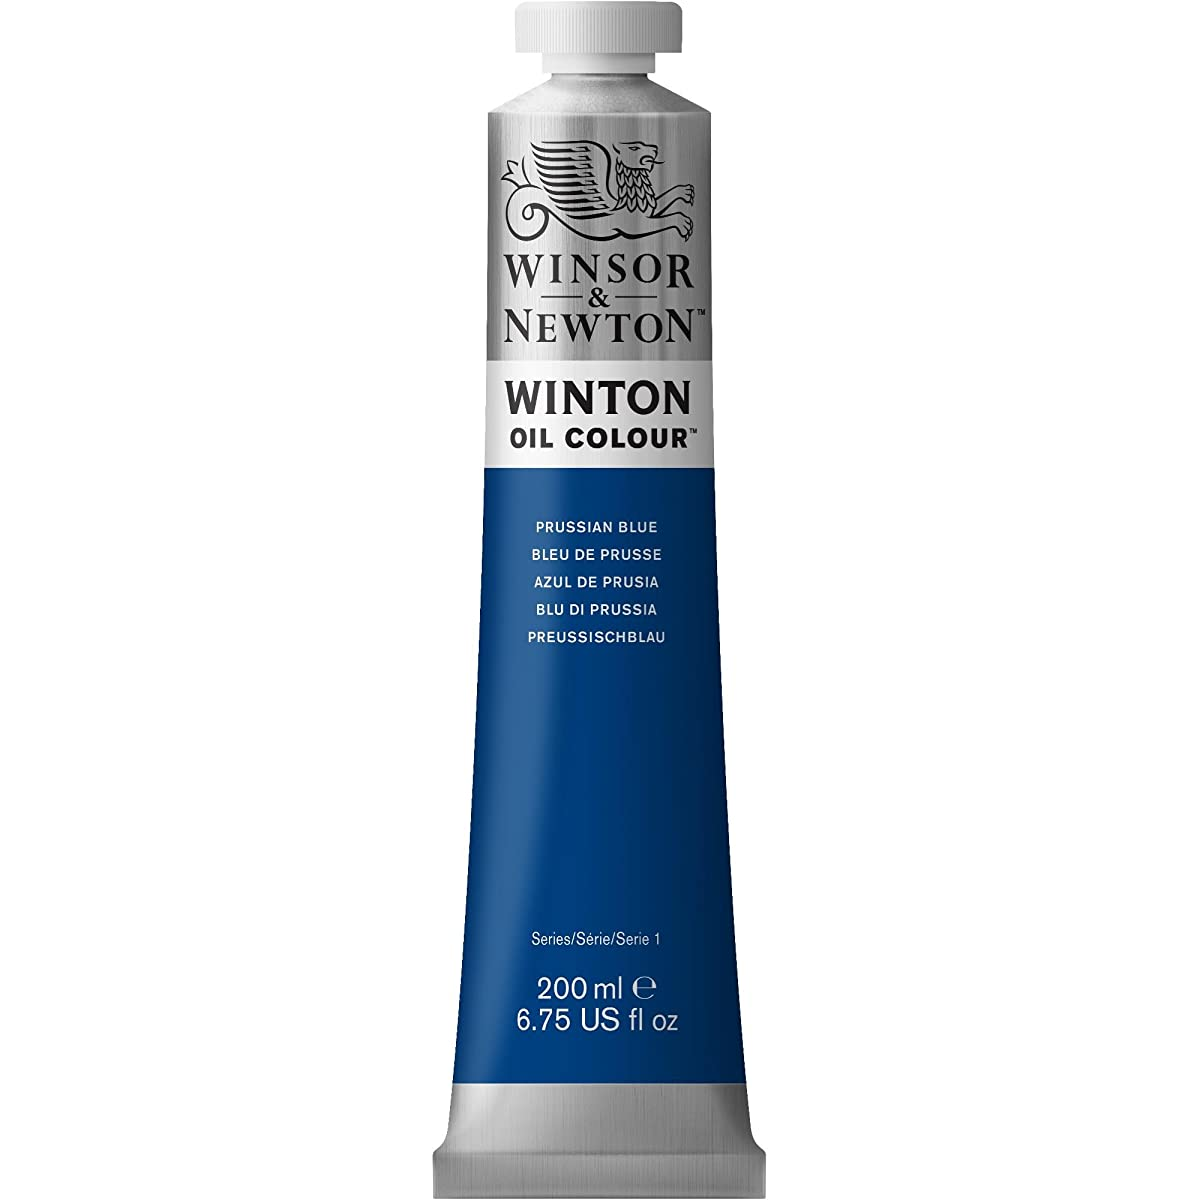 Winsor & Newton Winton Oil Colour Paint, 200ml tube, Prussian Blue